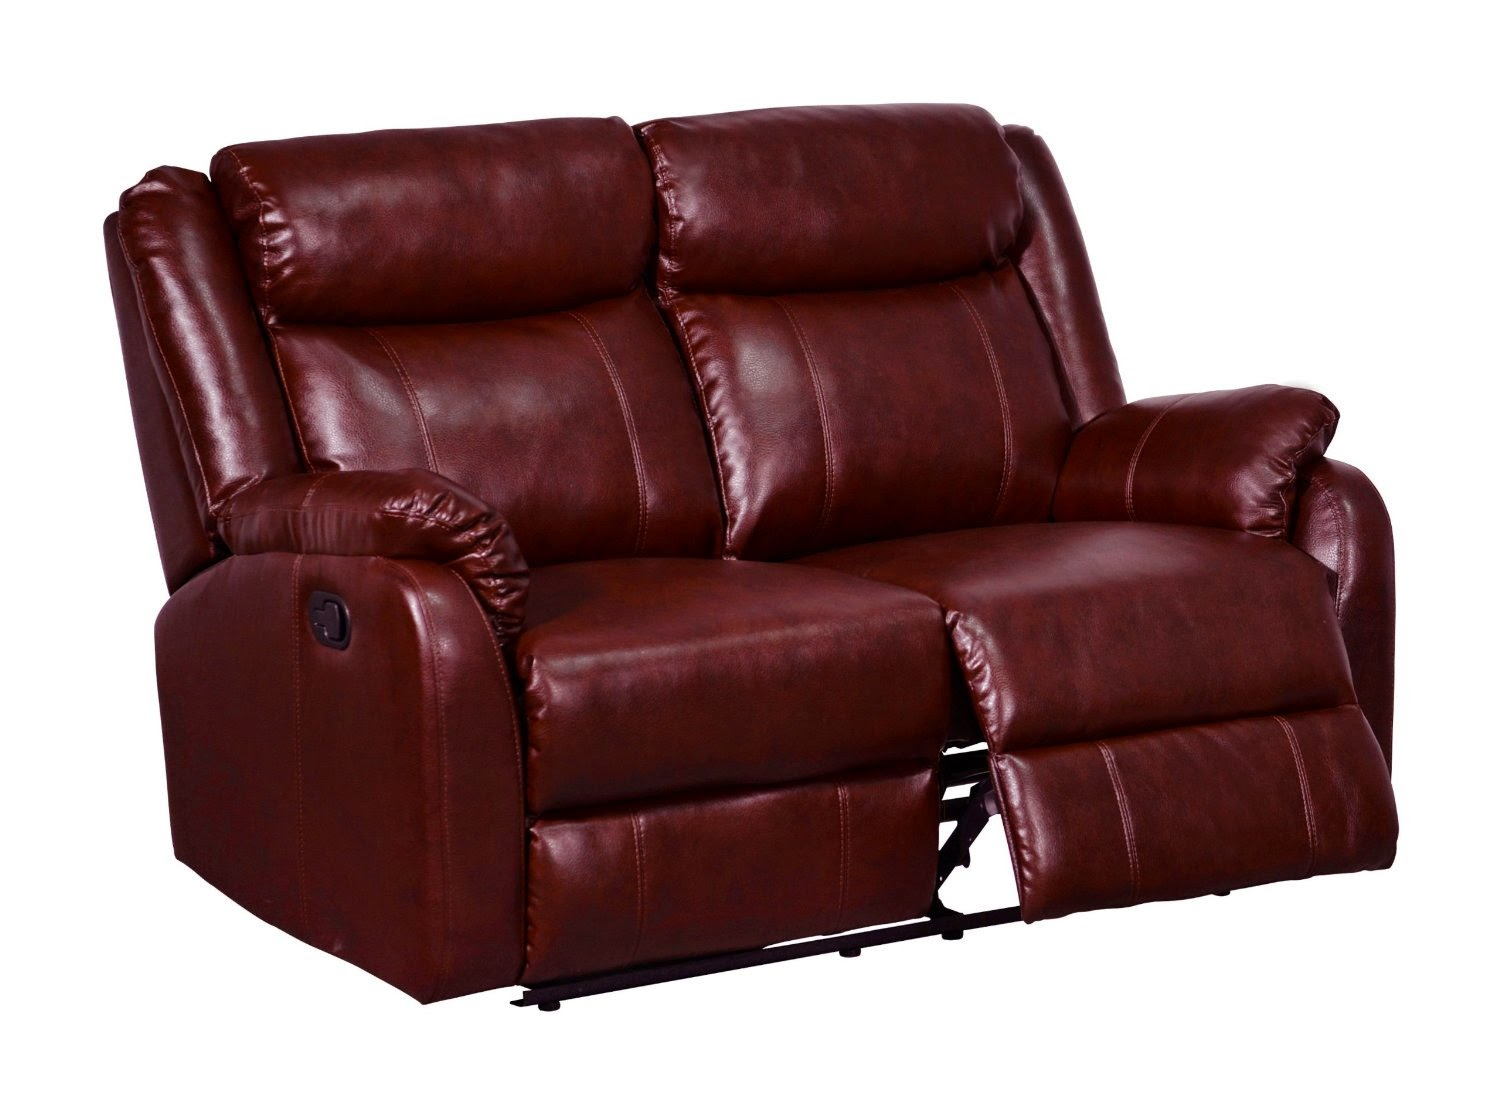 Cheap reclining sofas sale 2 seater leather recliner sofa sale Discount sofa loveseat